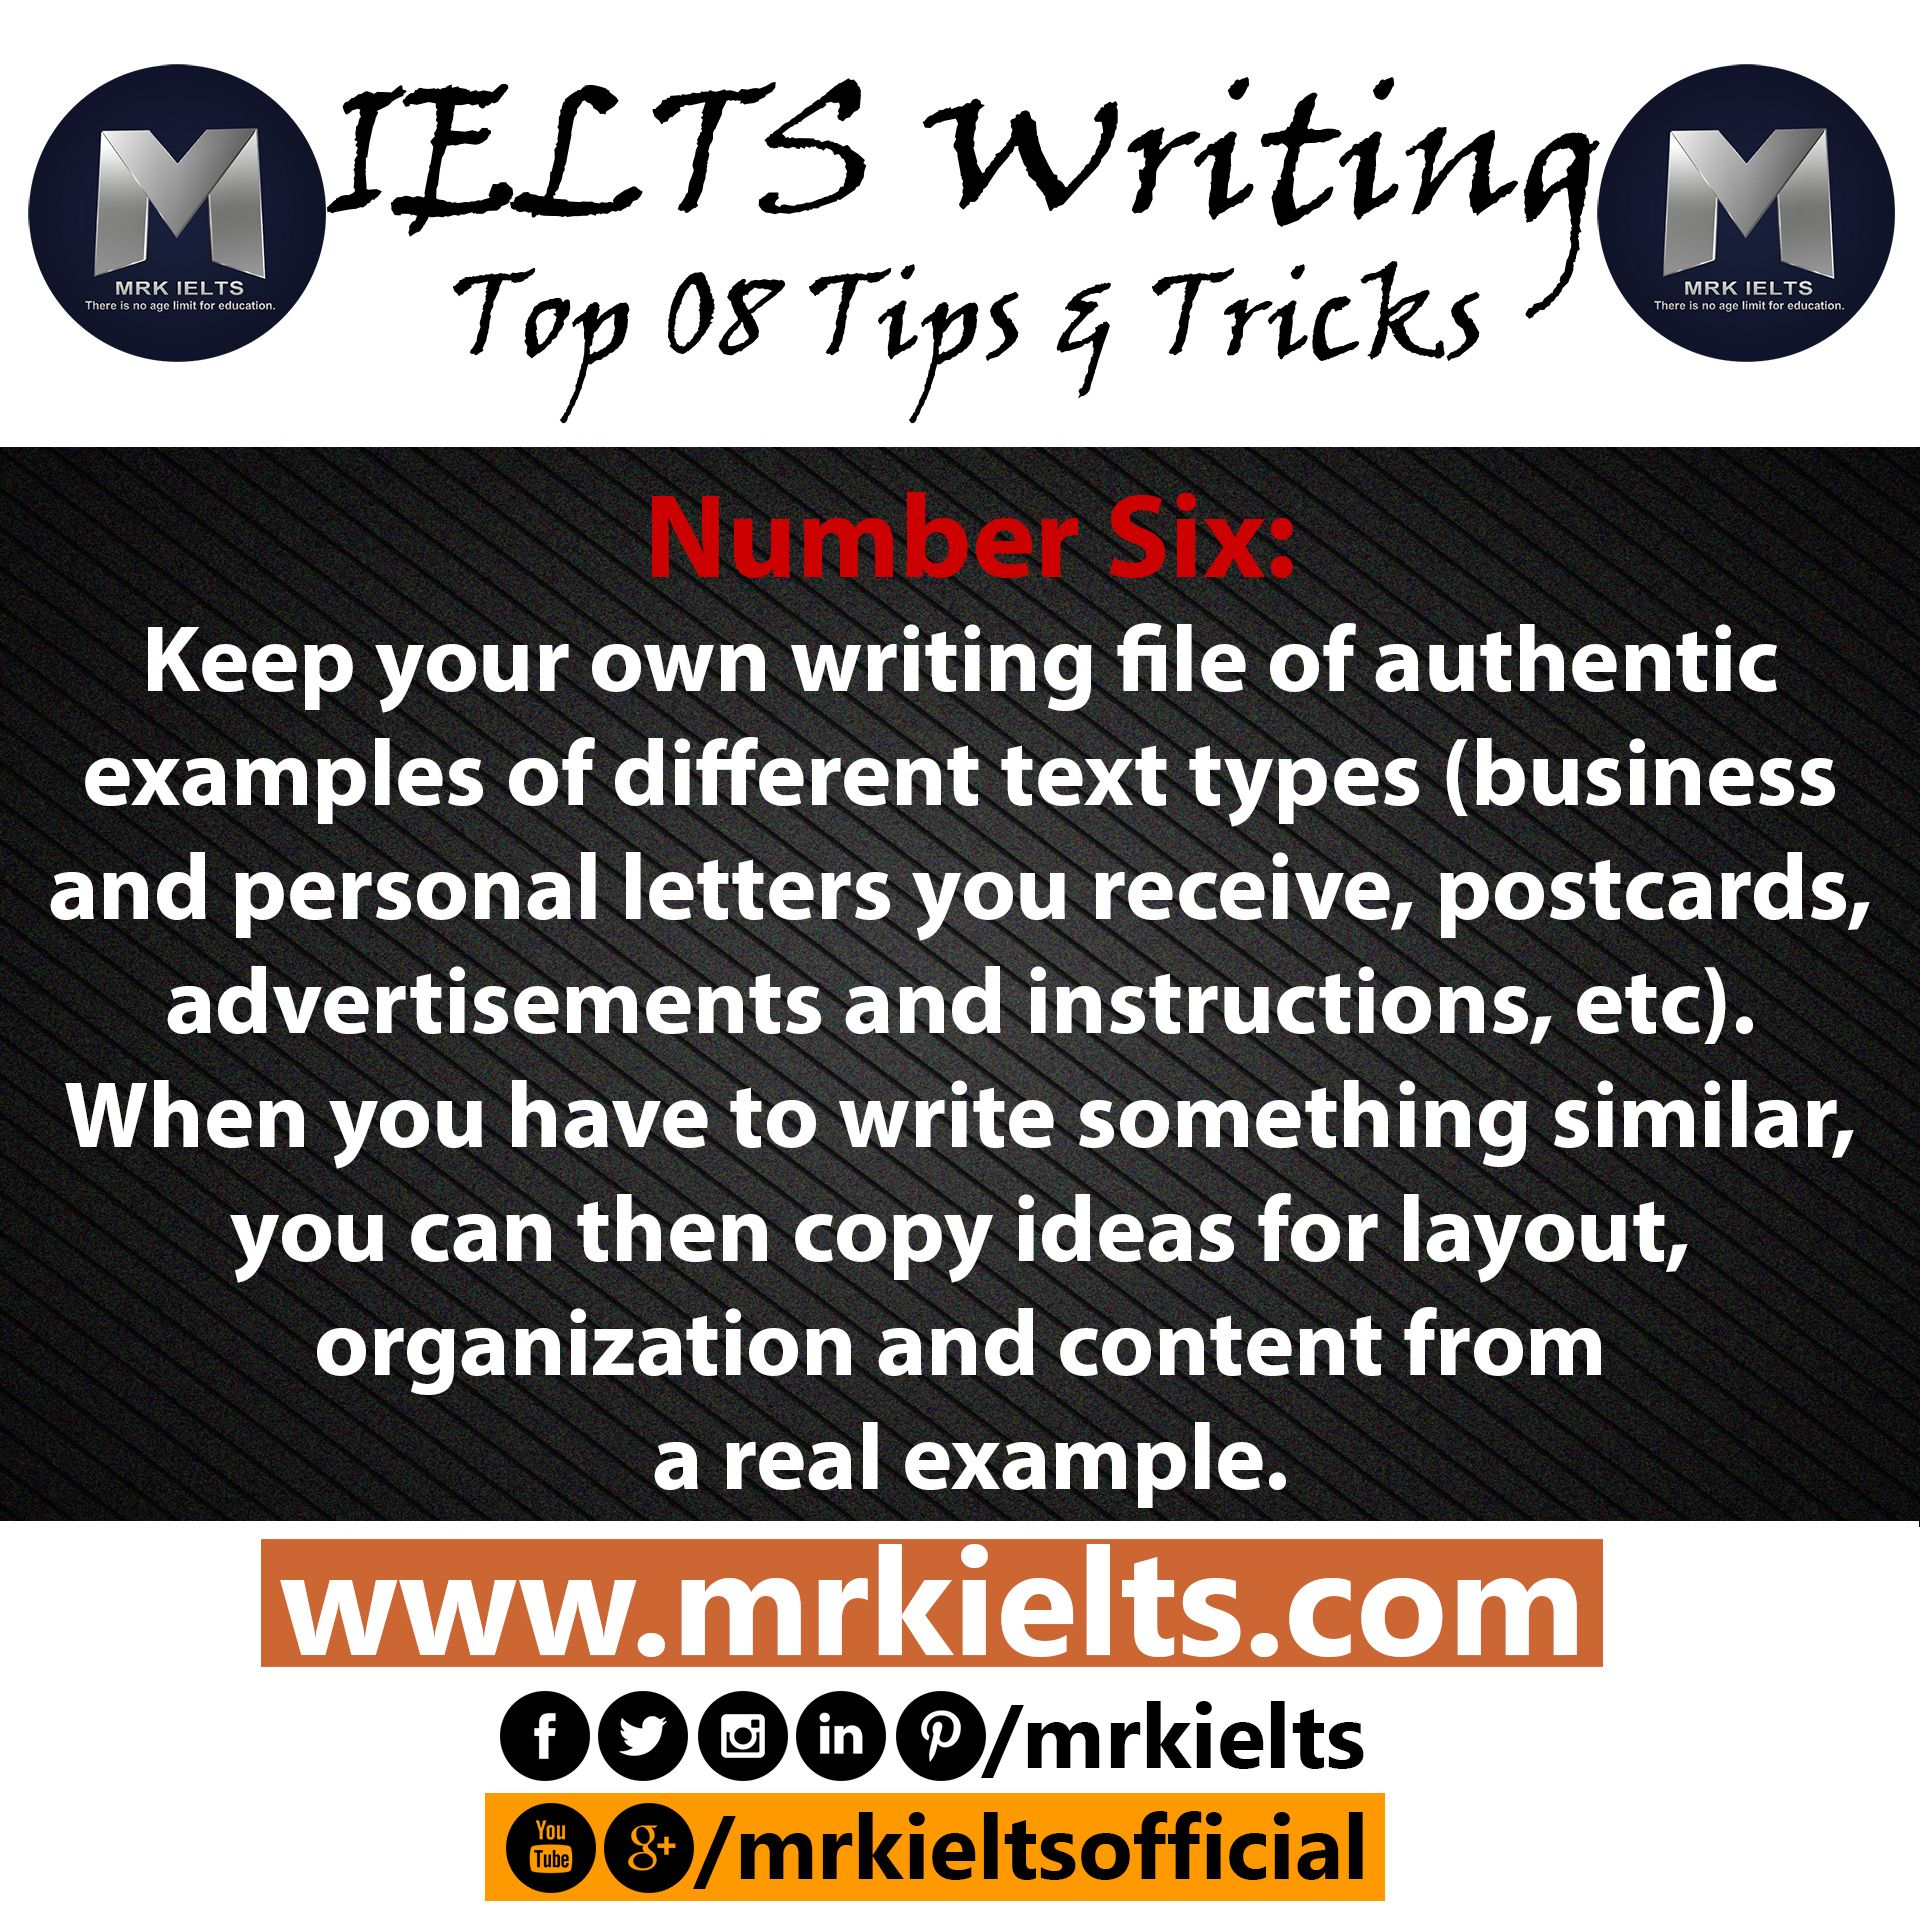 Keep your own writing file of authentic examples of different text